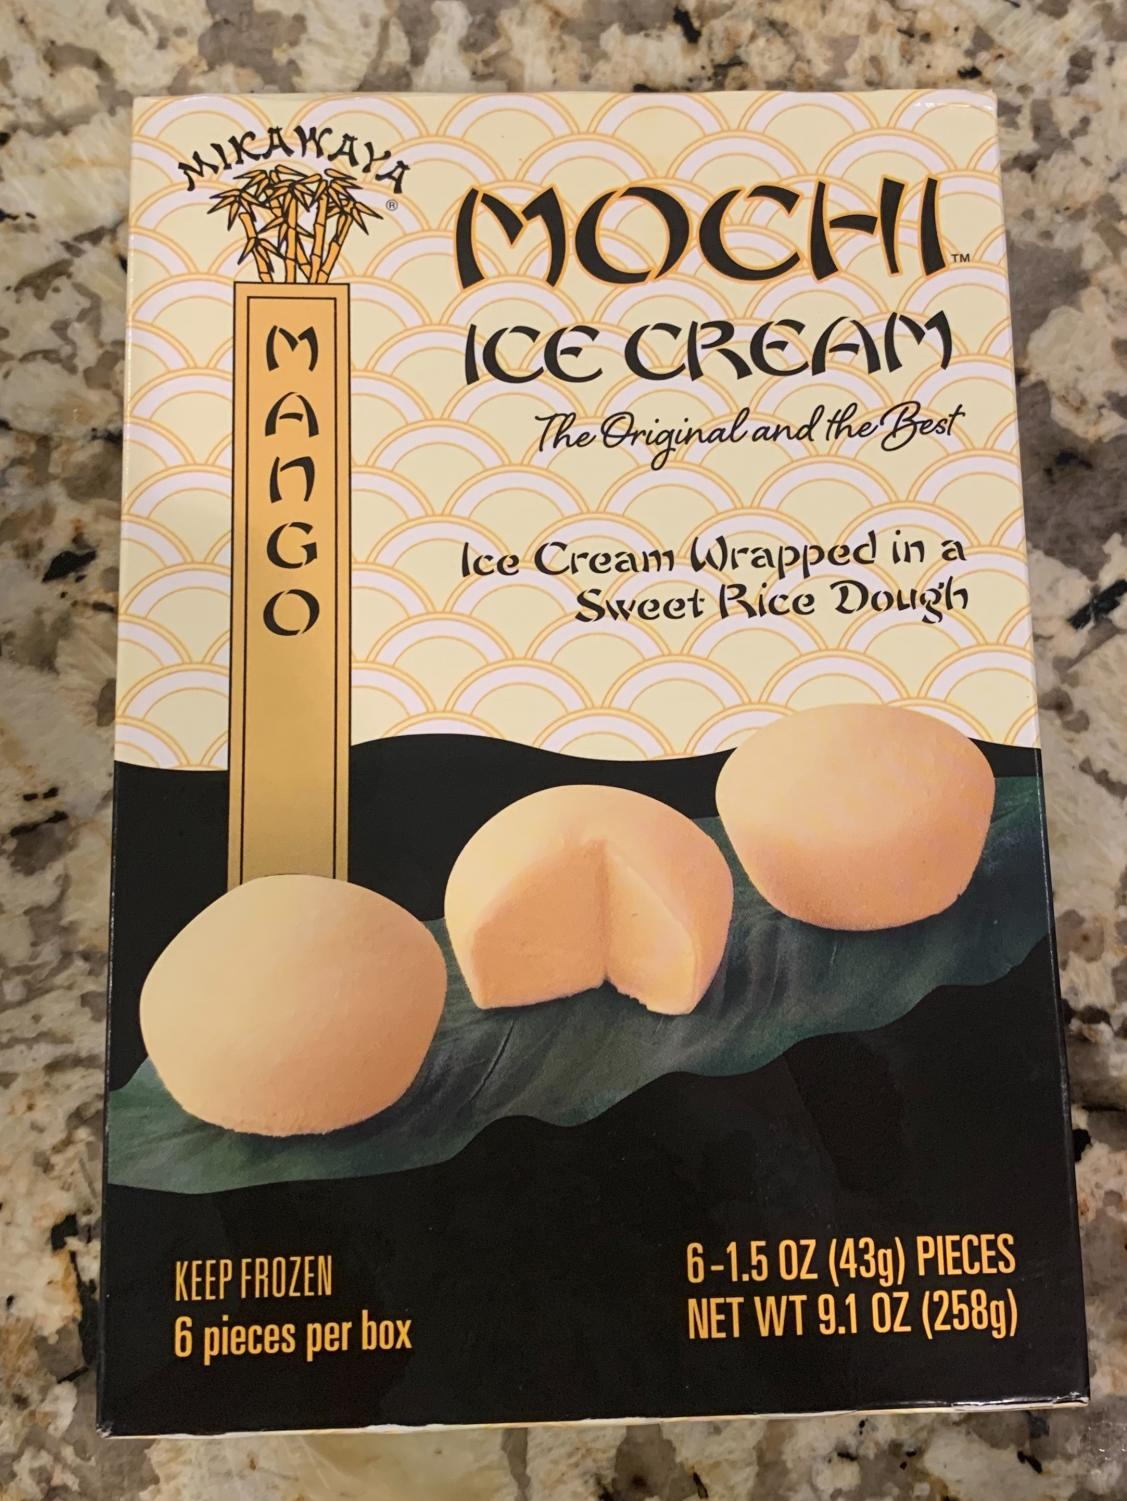 Mochi ice cream can be found in many flavors such as vanilla, strawberry, mango or matcha.